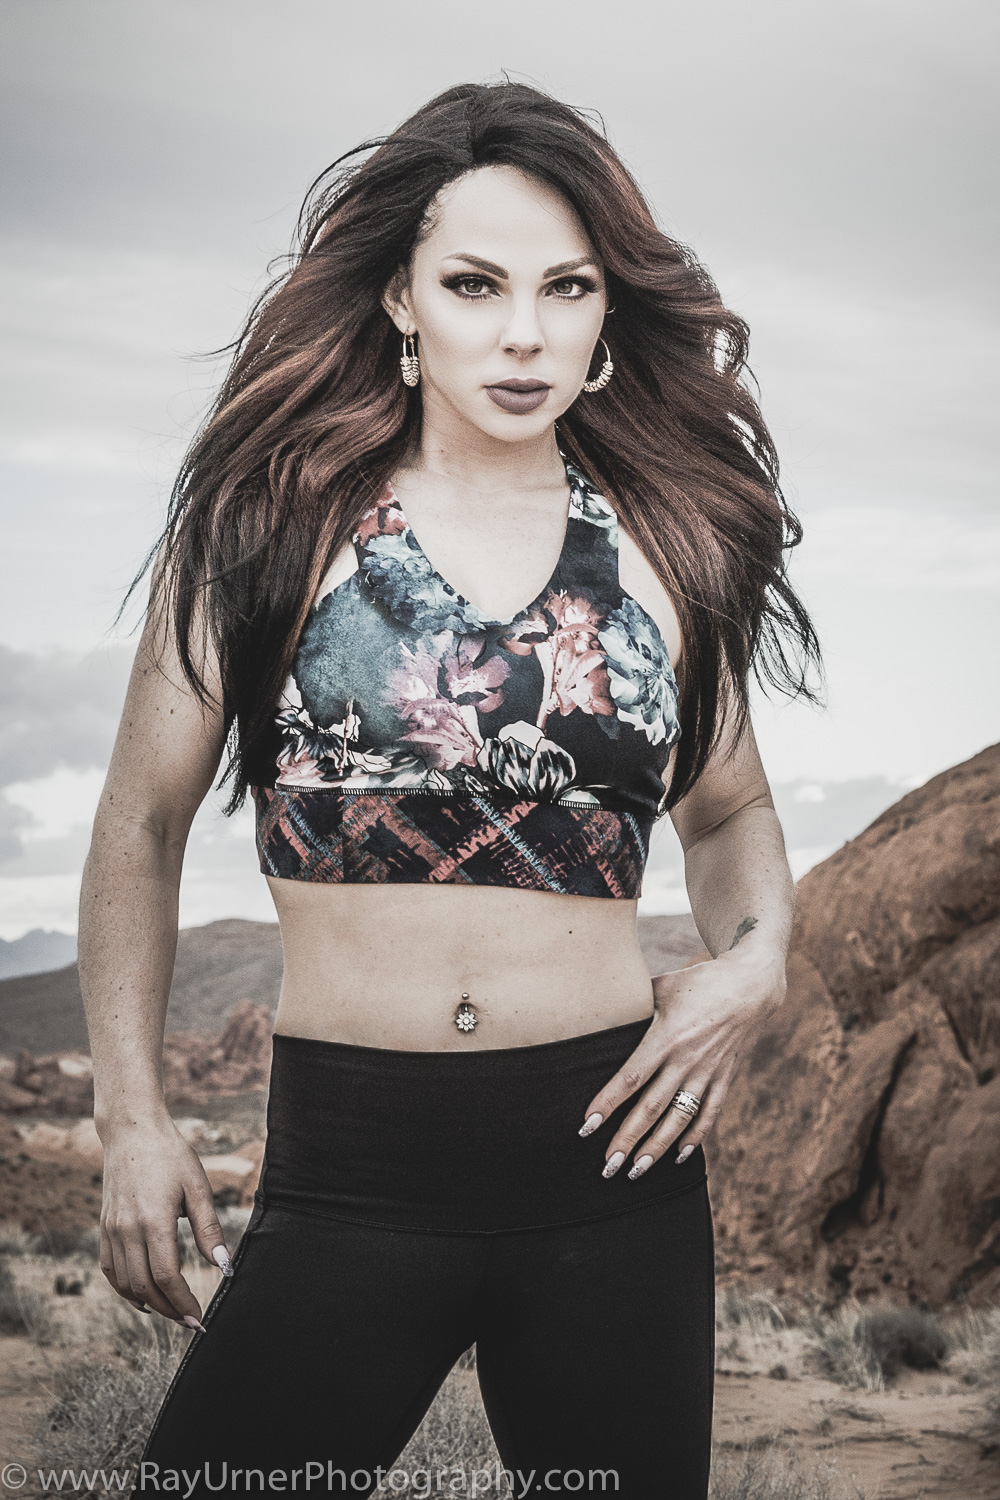 Mandy - Valley of Fire (1 of 24).jpg